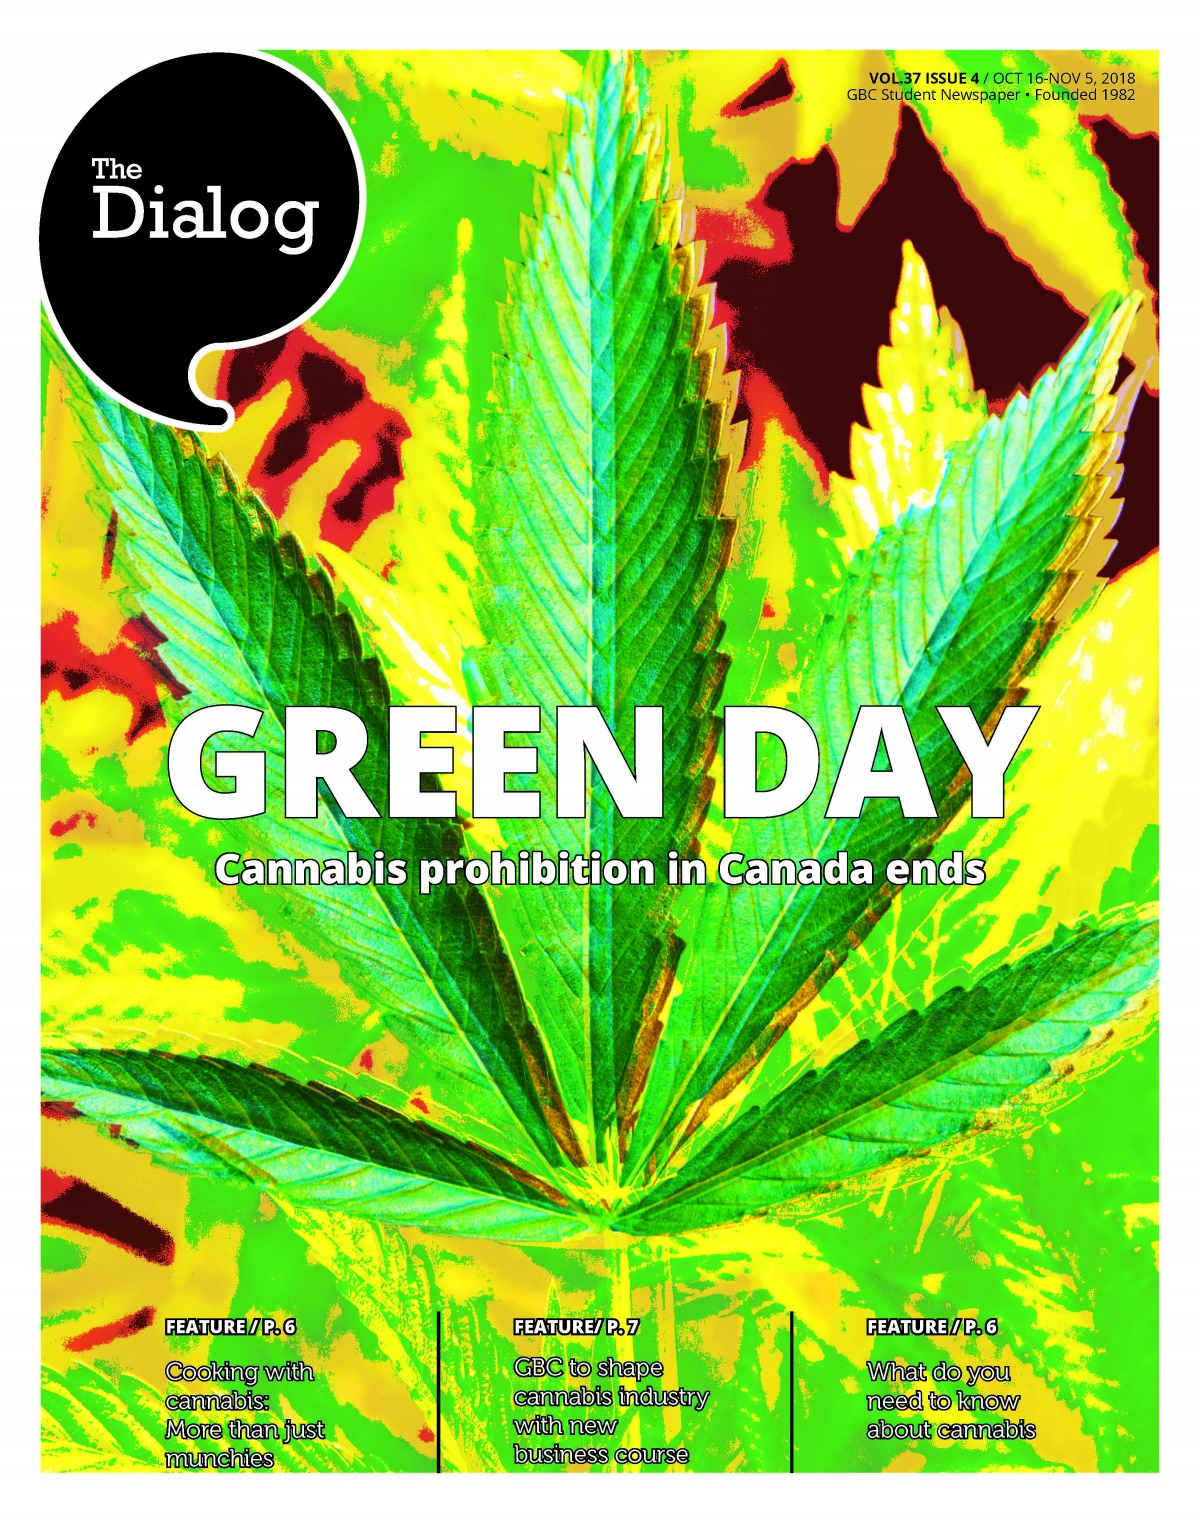 The Dialog Vol. 37, Issue 4, Oct. 17 to 29, 2018